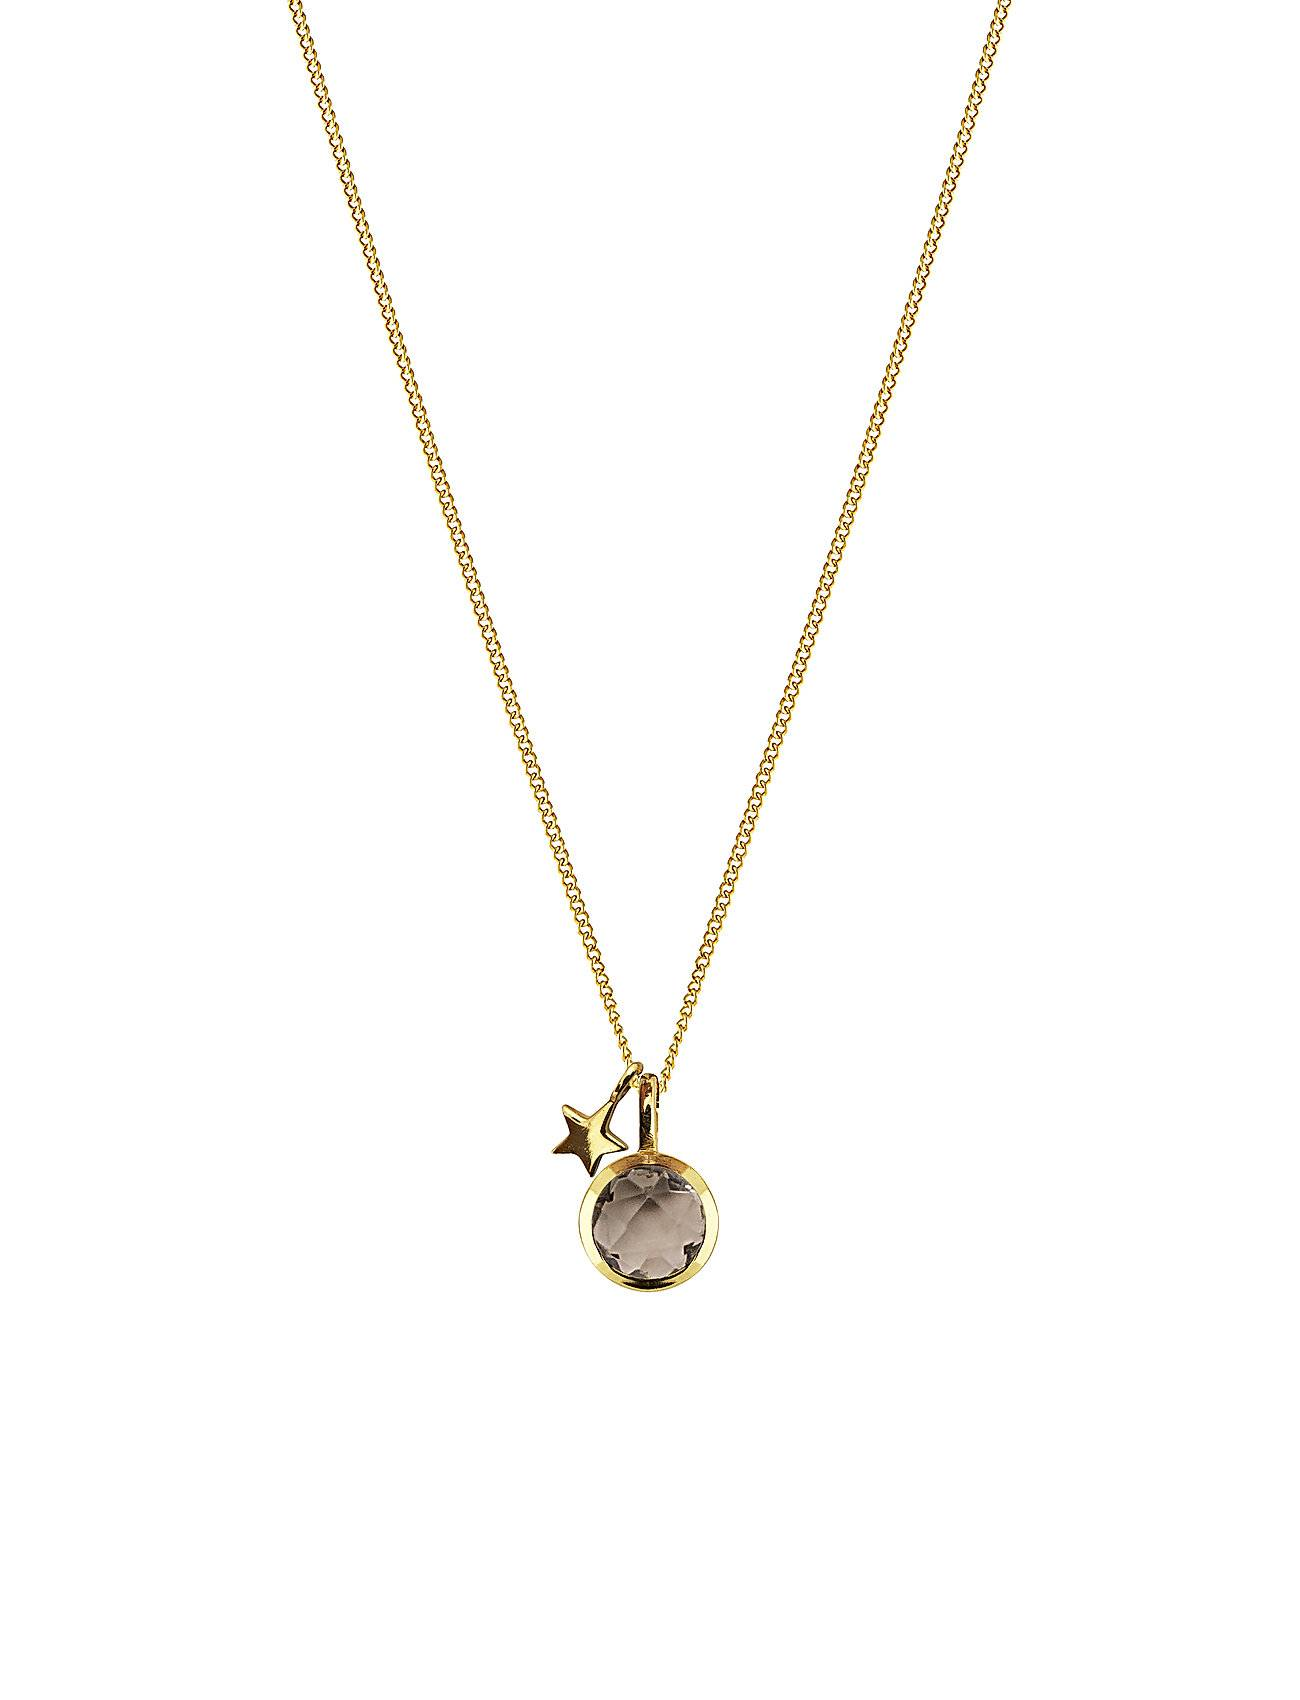 Syster P Priscilla Necklace Gold Smokey Accessories Jewellery Necklaces Dainty Necklaces Kulta Syster P